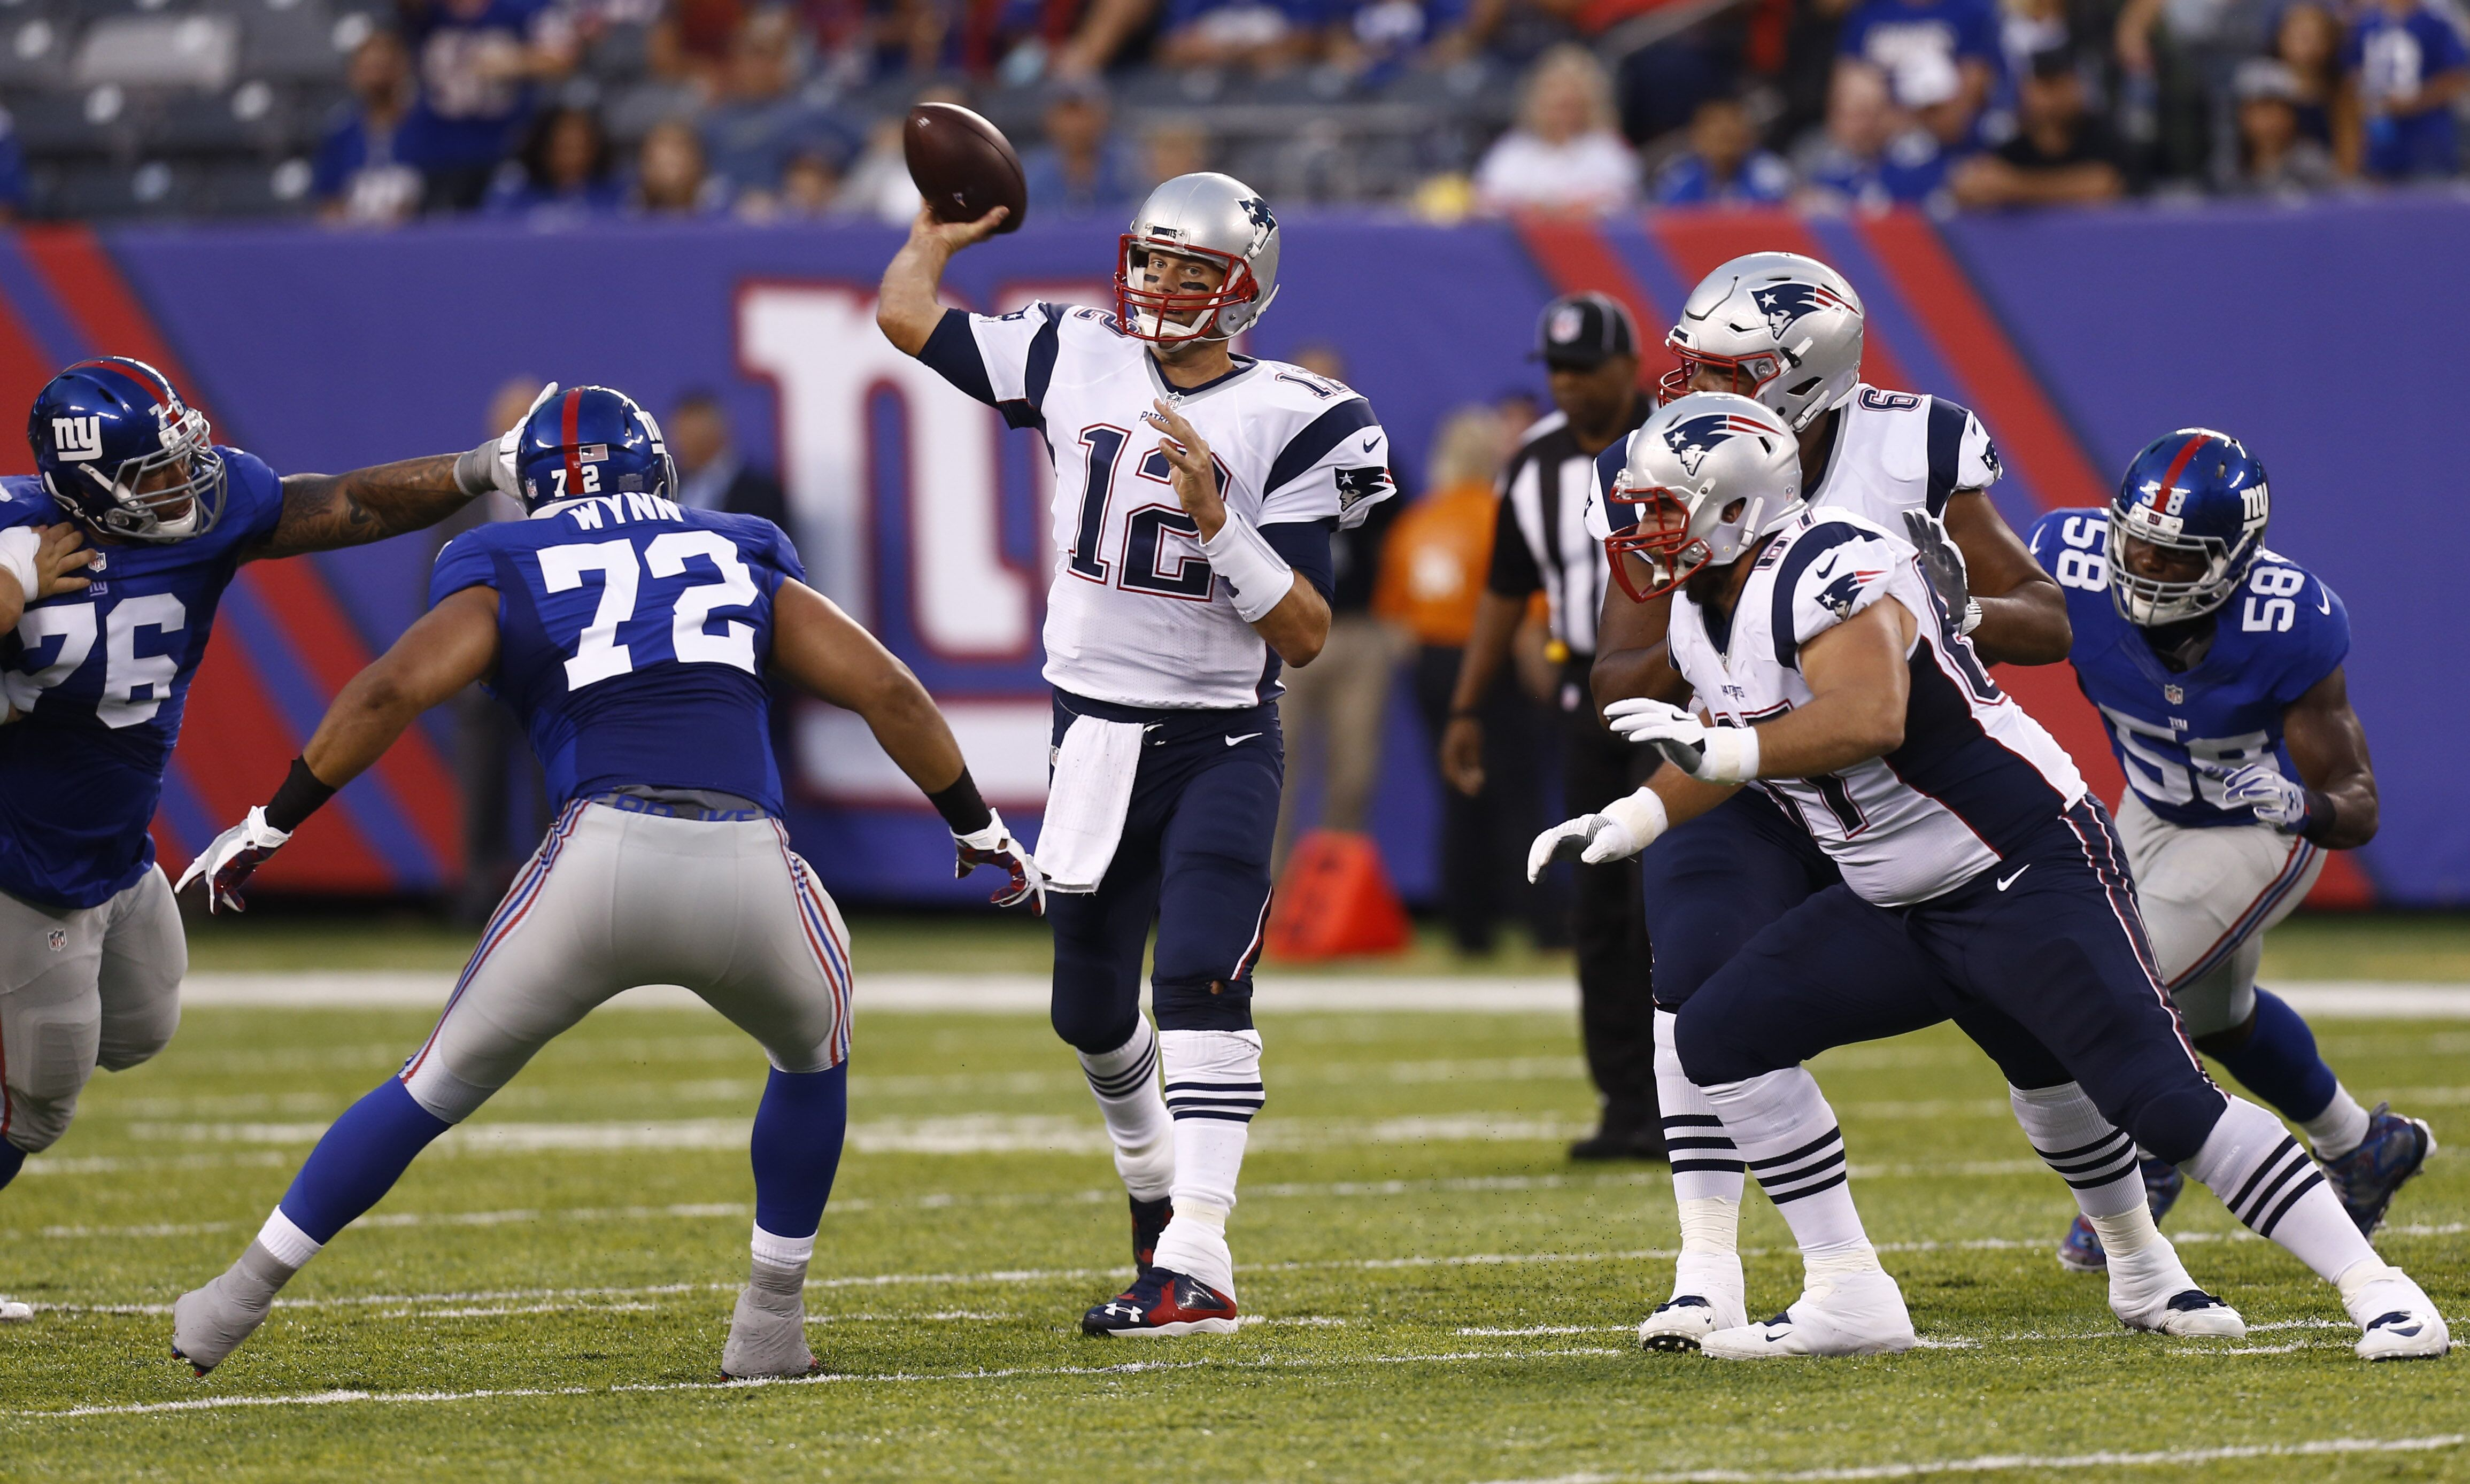 598596490-new-england-patriots-v-new-york-giants